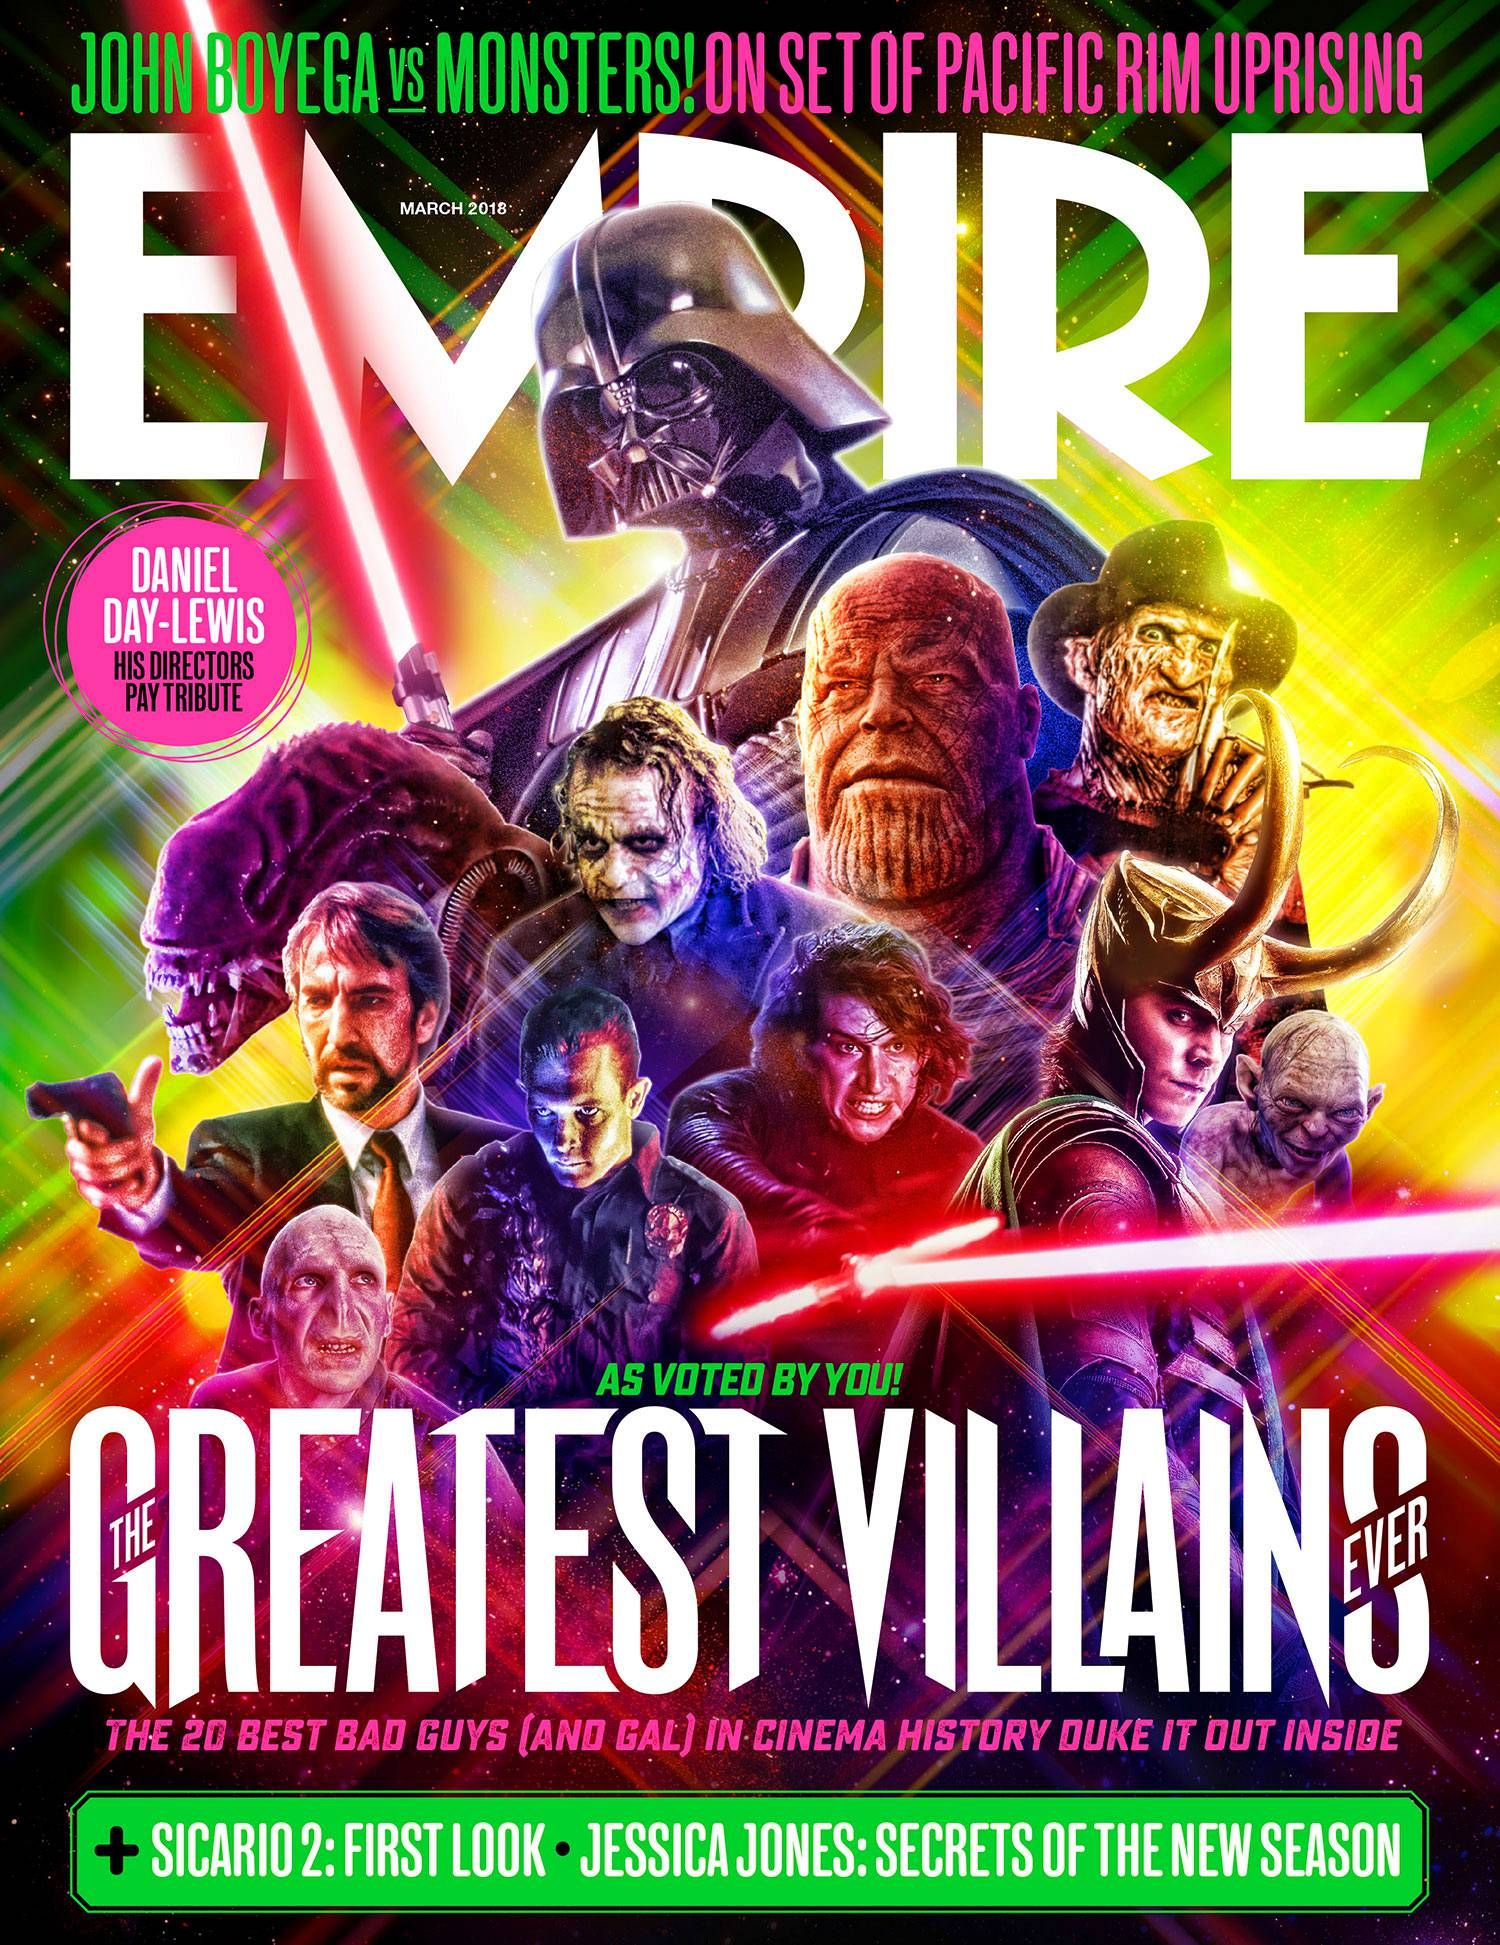 The Avengers: Infinity War Thanos Featured On Empire's Greatest Villains  Cover